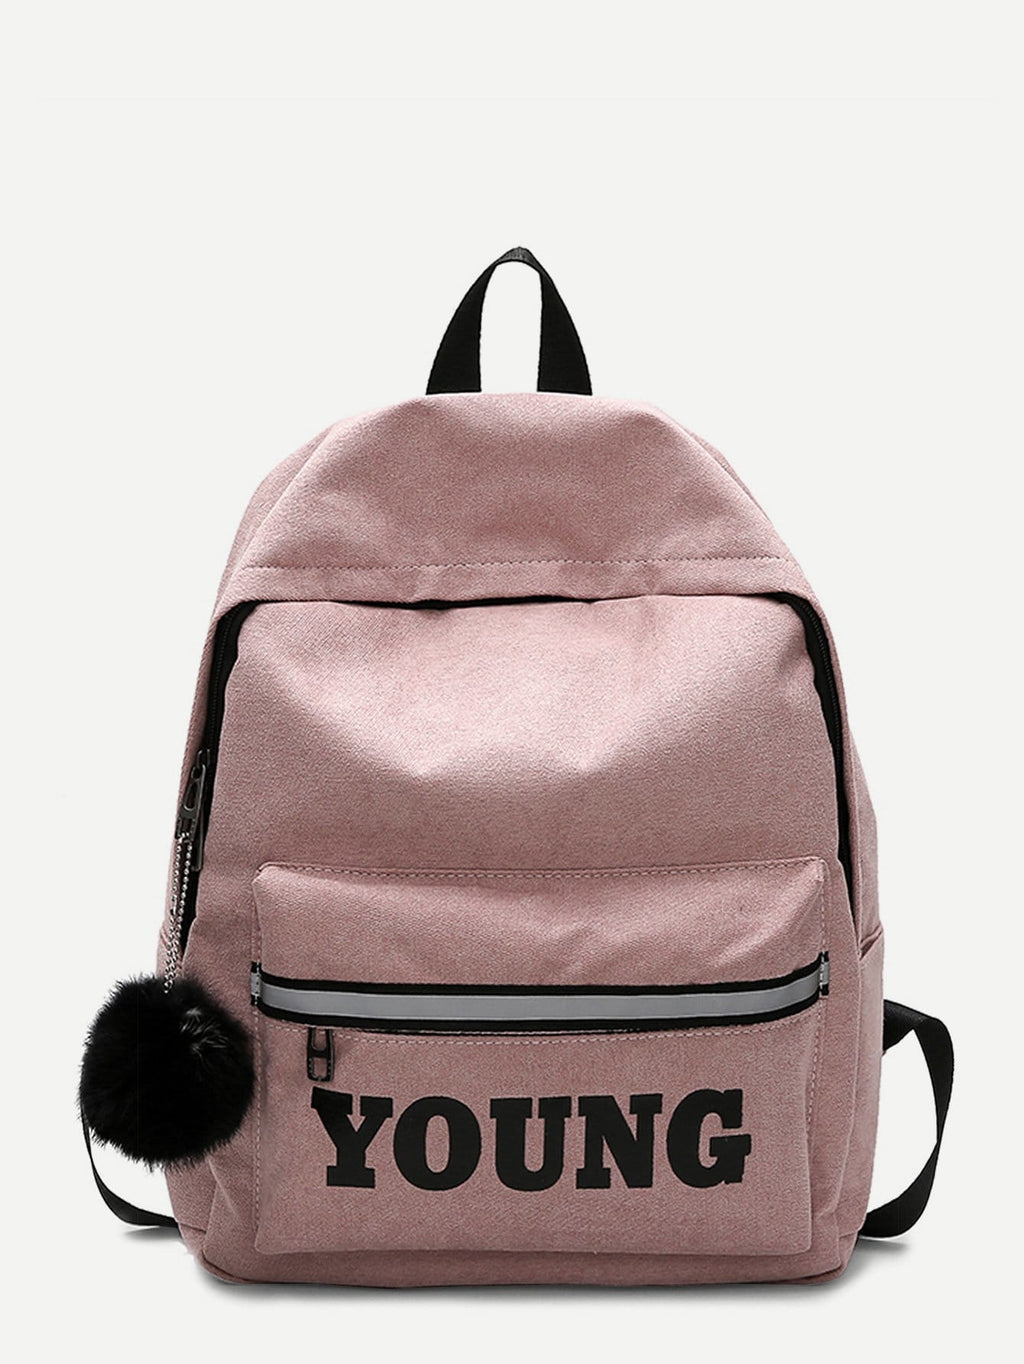 Bags For Women - Pom Pom Decor Slogan Detail Backpack